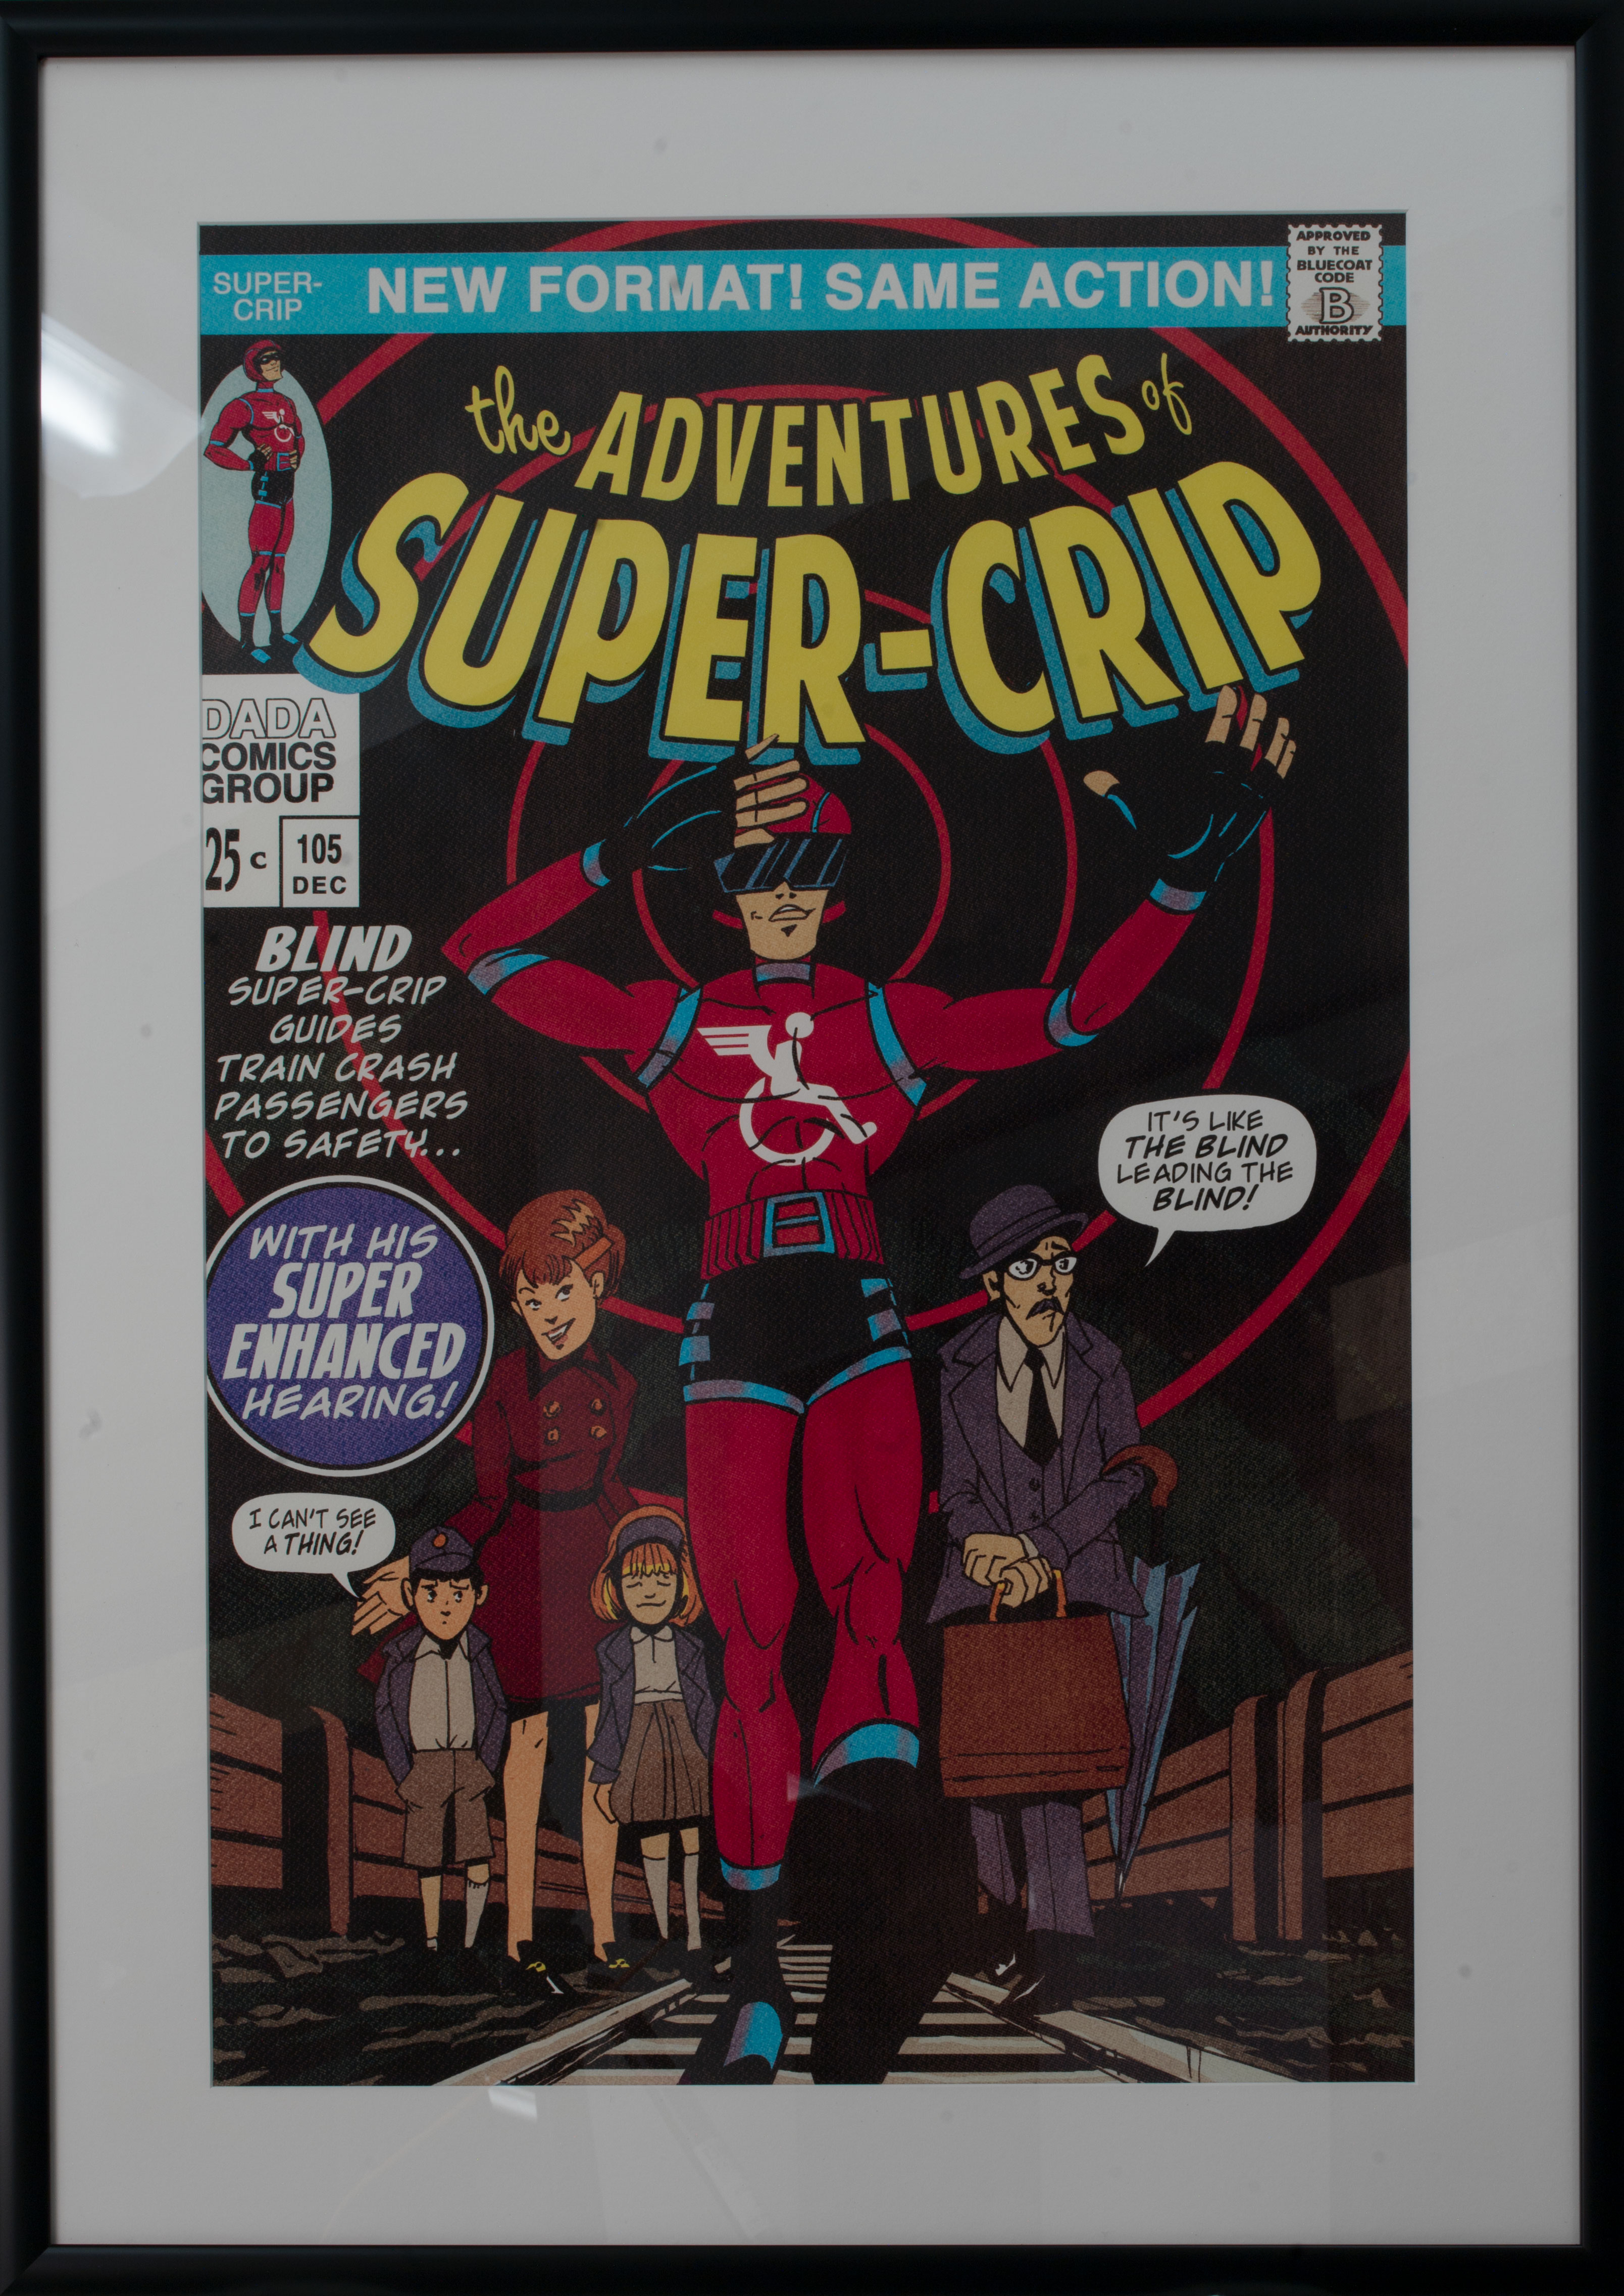 The Adventures of Super-crip by Andrew Tunney and Lawrence